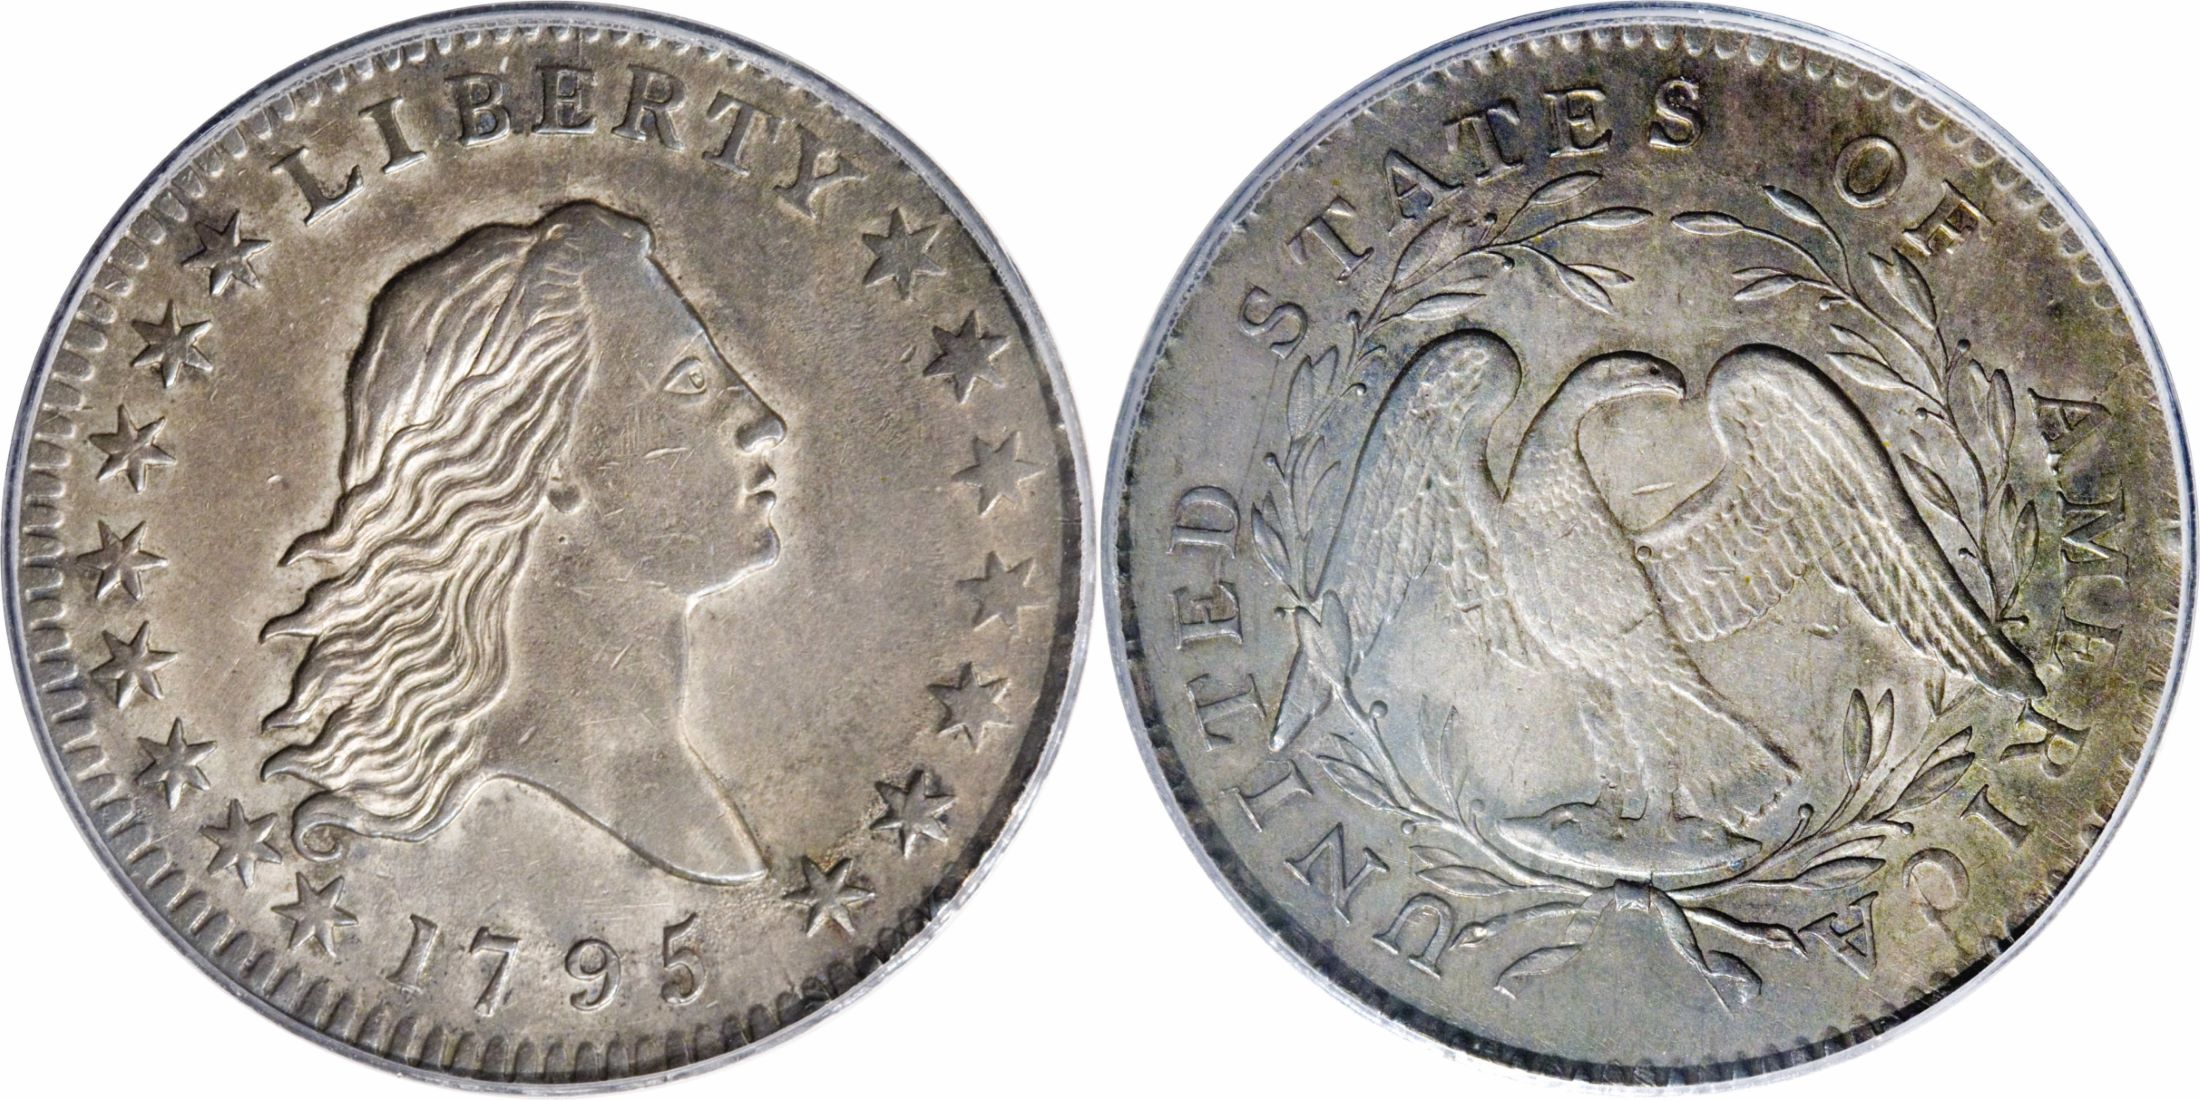 "PCGS AU58<BR>Image courtesy of <a href=""http://www.ha.com"" target=""_blank"">Heritage Numismatic Auctions</a>"